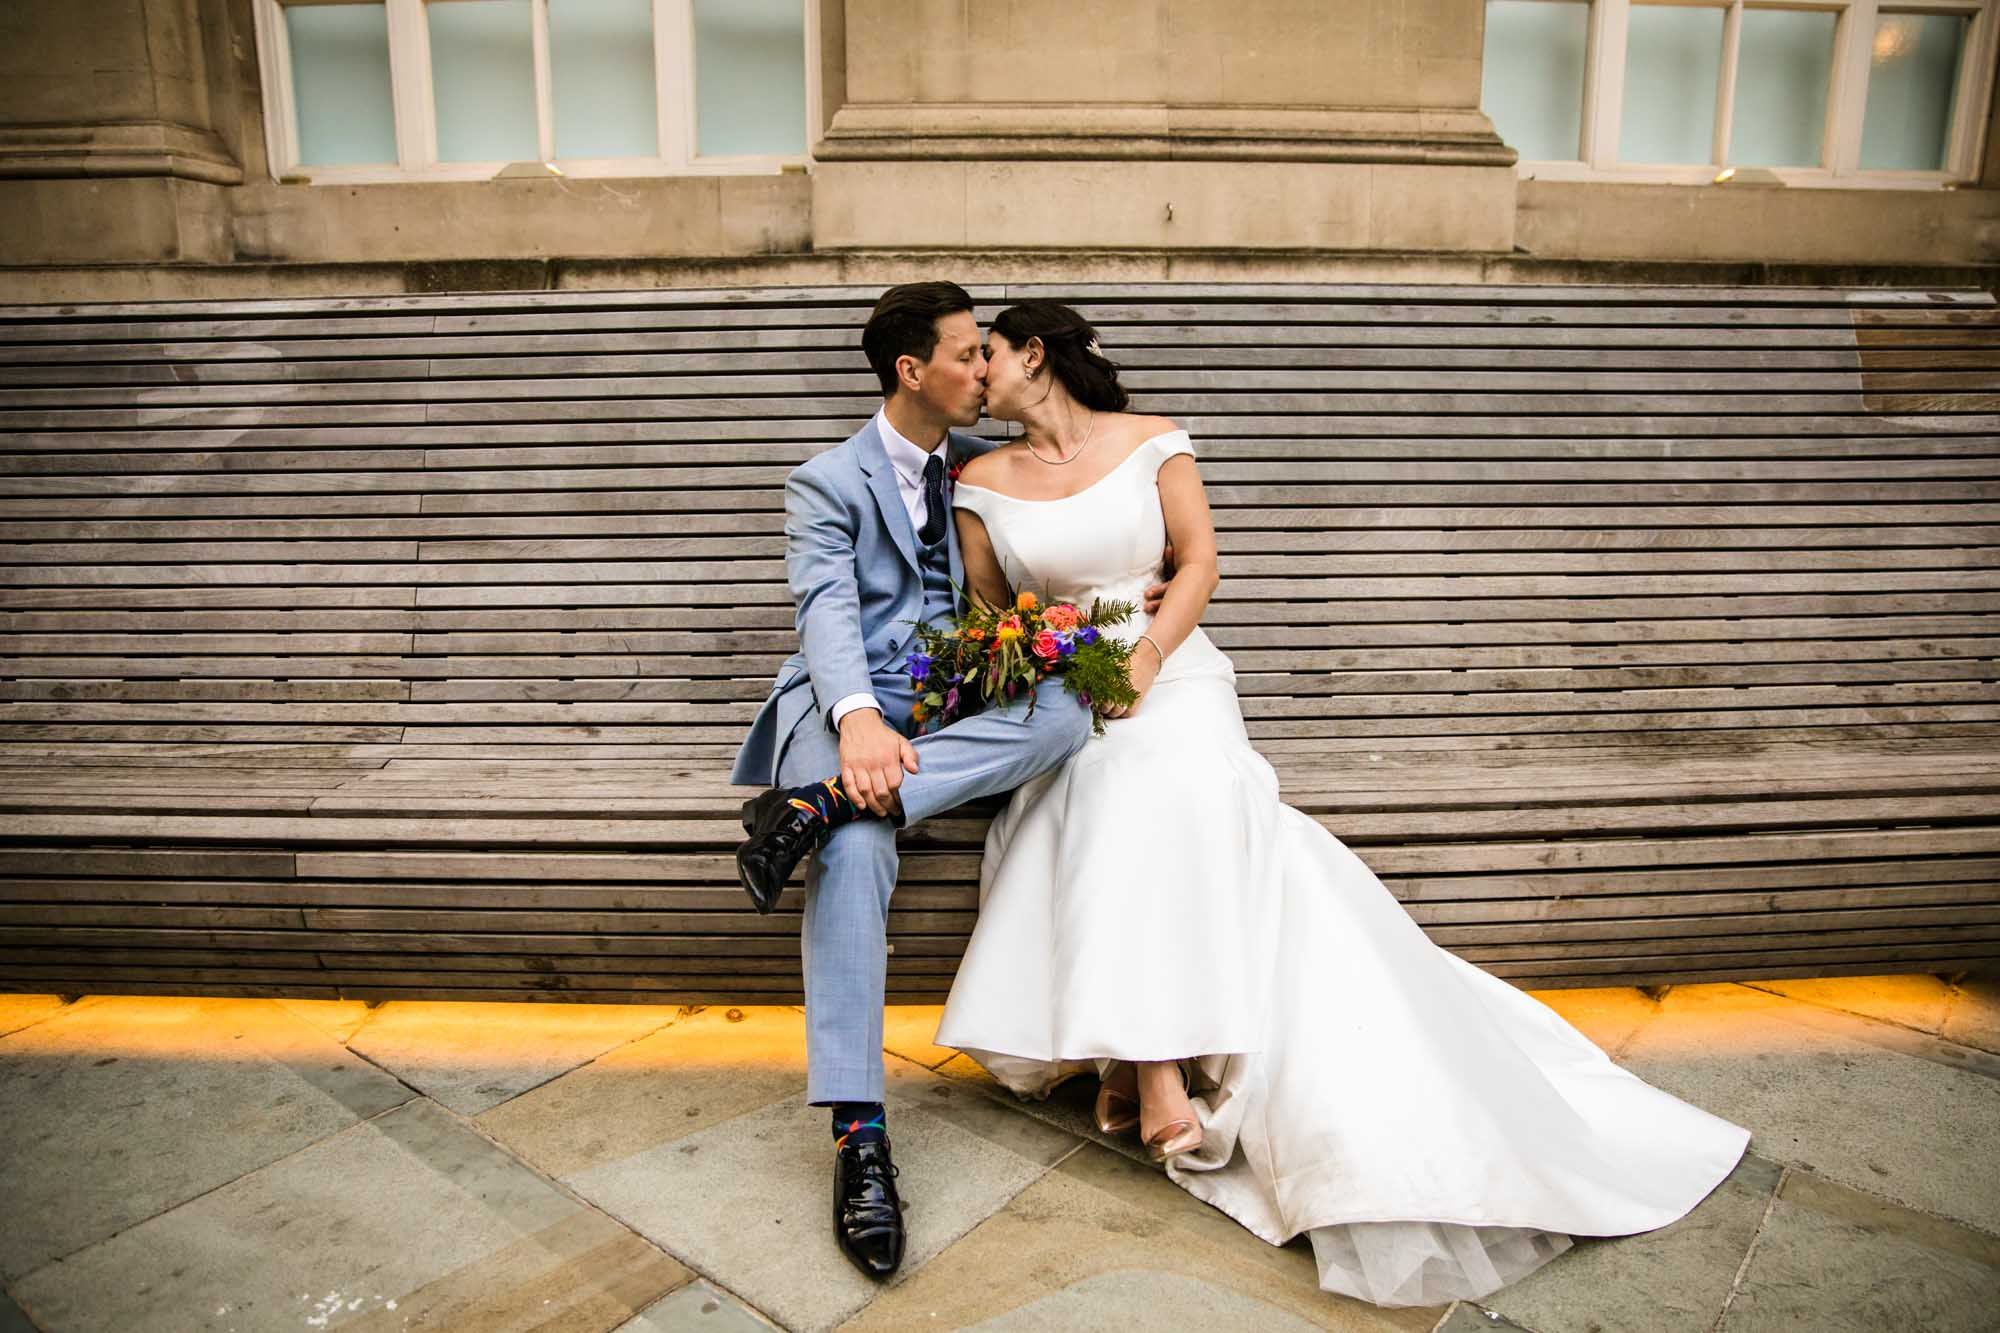 Colourful Wedding Photography Manchester